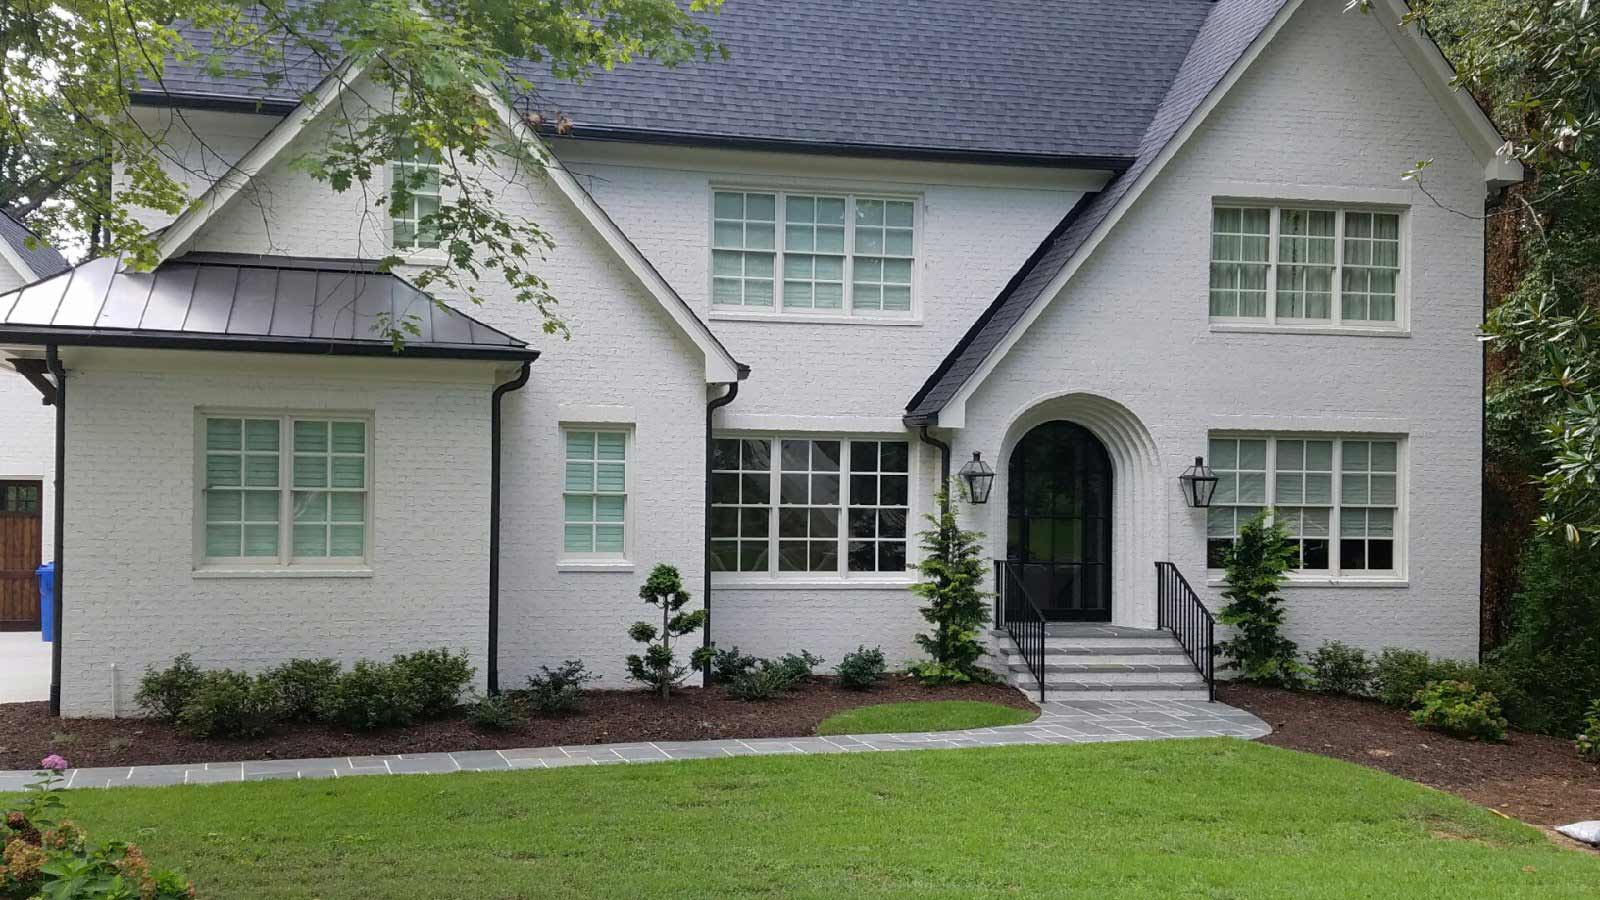 Best masonry paint for homes